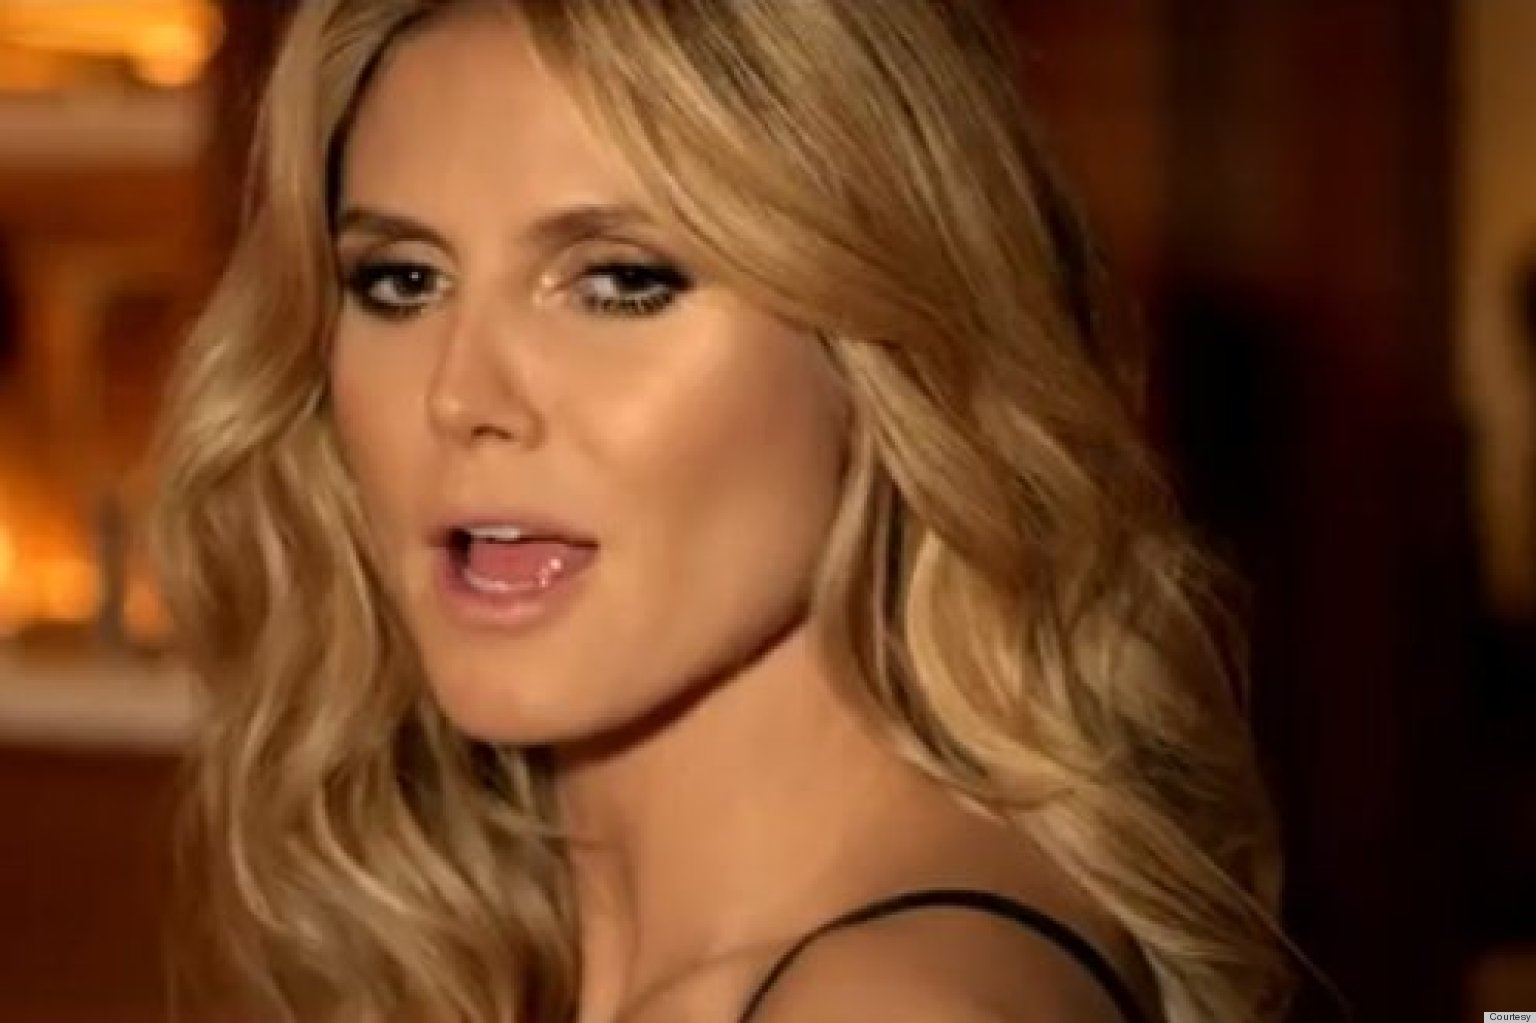 Heidi Klum: I Got Upstaged By The Hamburger In My Carl's Jr. Commercial